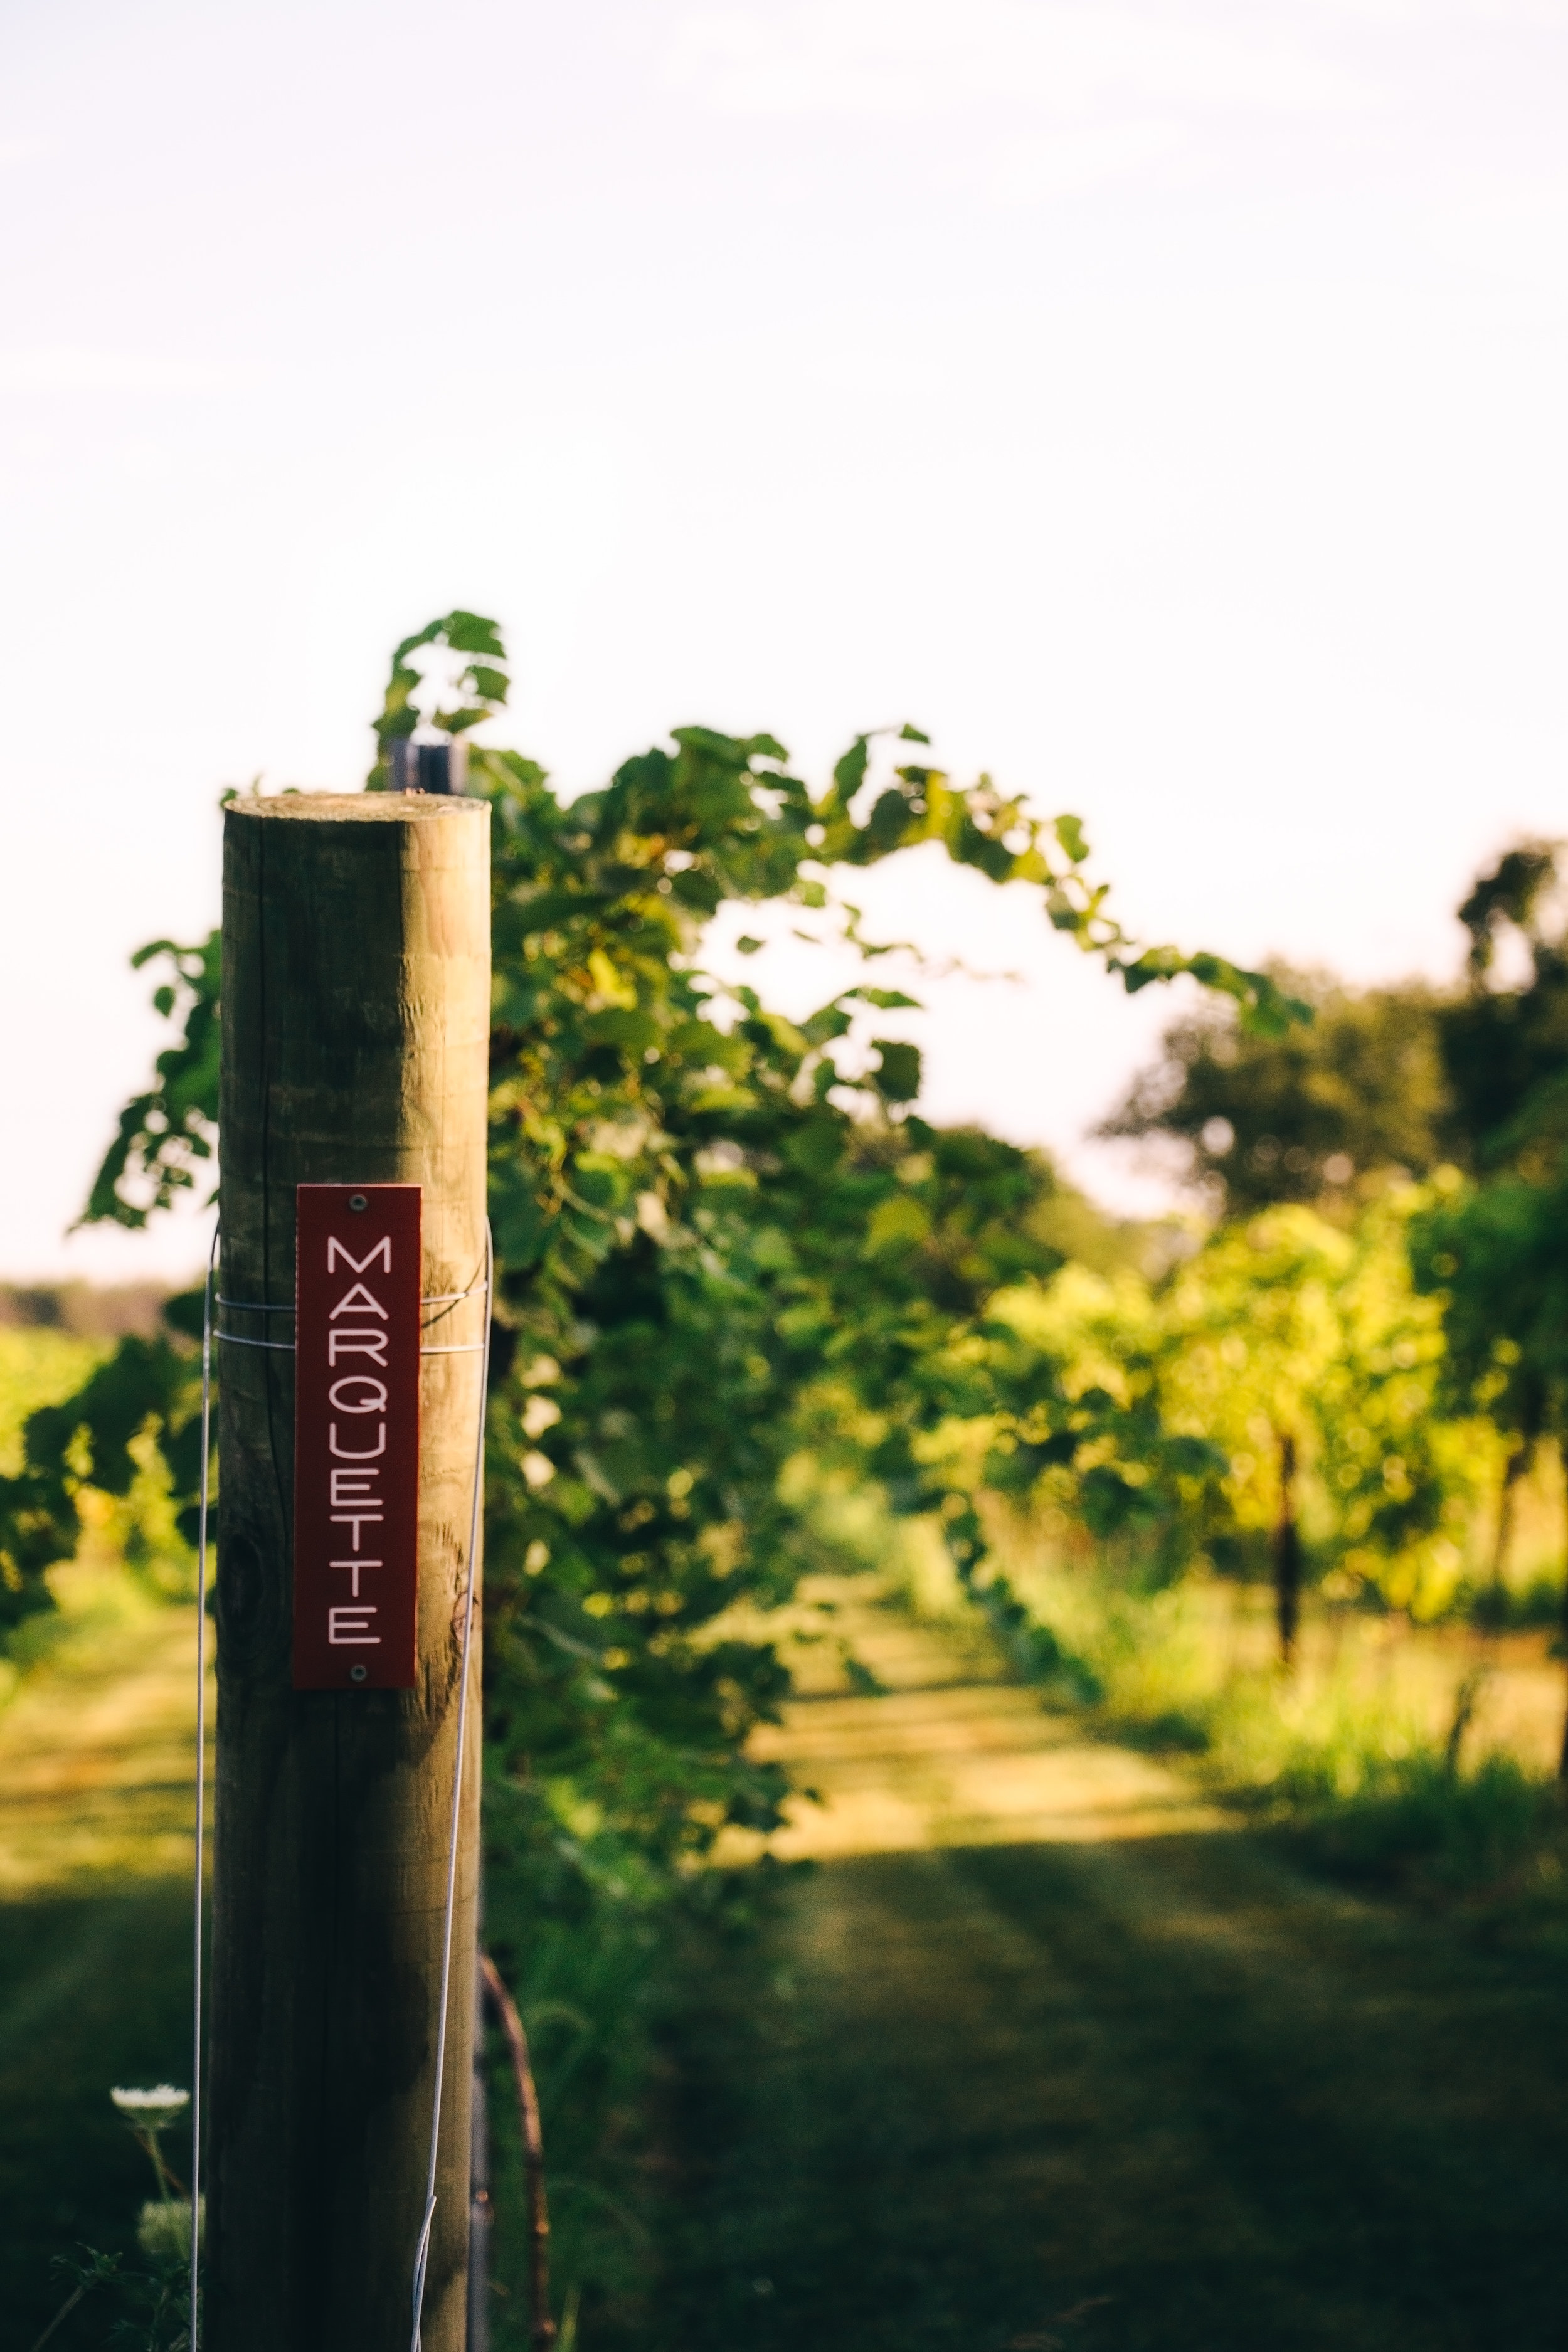 Marquette - Marquette wines are complex, with attractive ruby color, pronounced tannins, and desirable notes of cherry, berry, black pepper, and spice on both nose and palate. As a red wine, Marquette represents a new standard in cold hardy viticulture and enology.